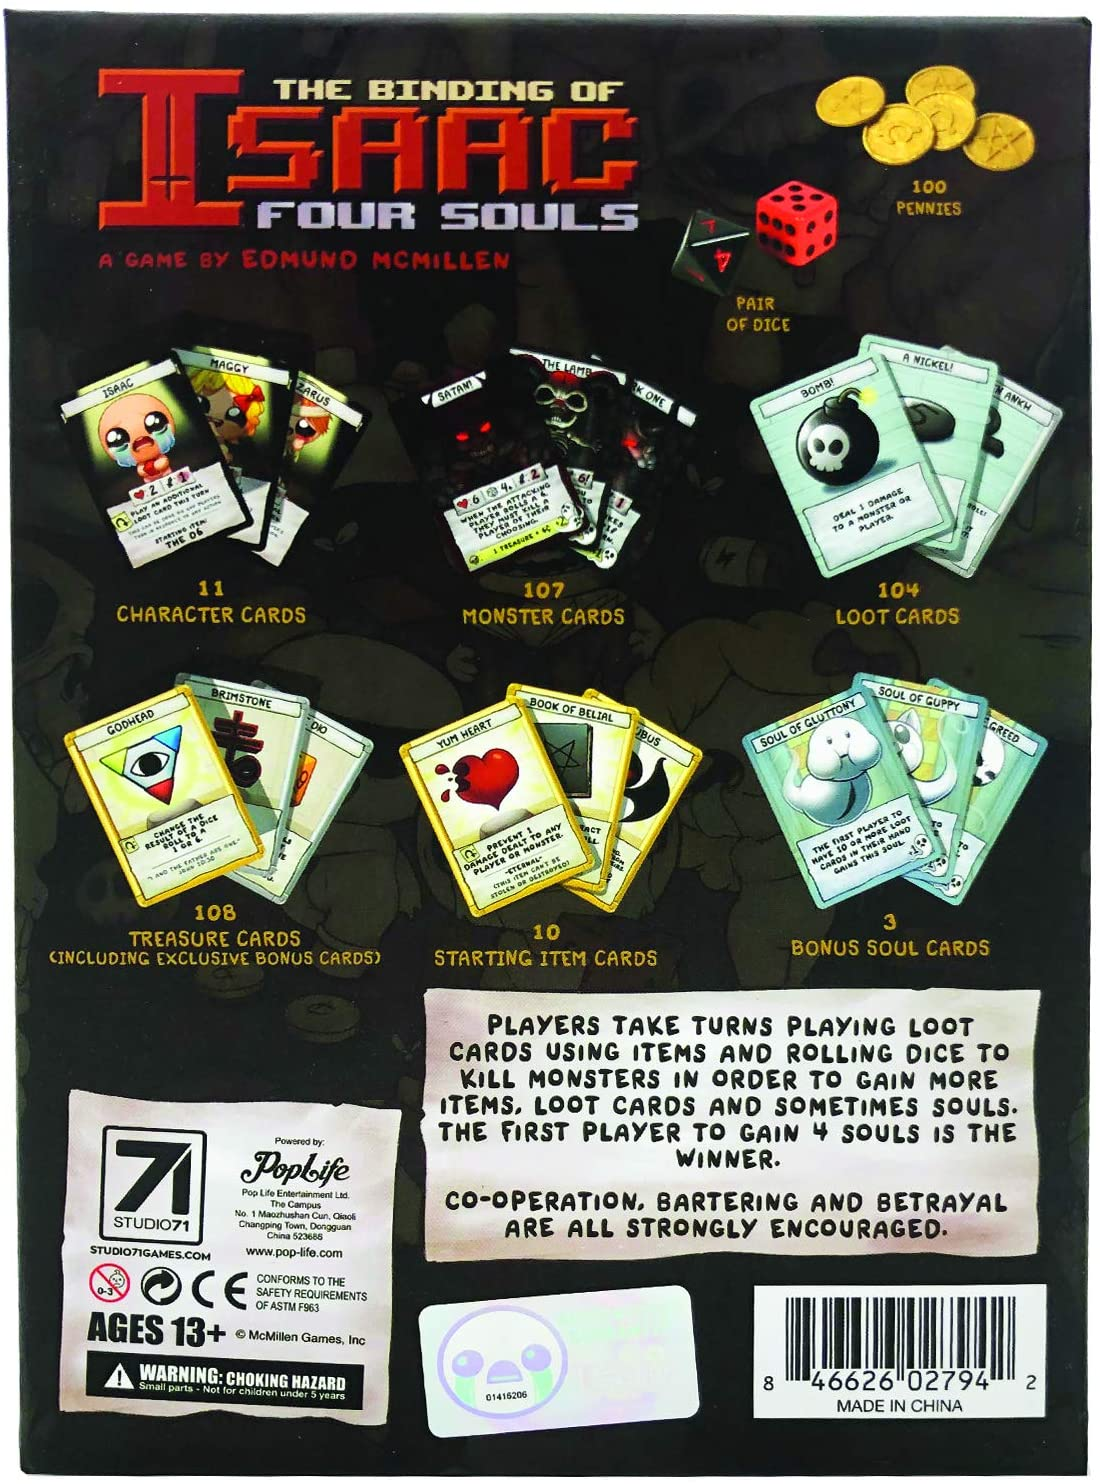 The Binding of Isaac Four Souls (edición Exclusiva de 3 Tarjetas): Amazon.es: Juguetes y juegos